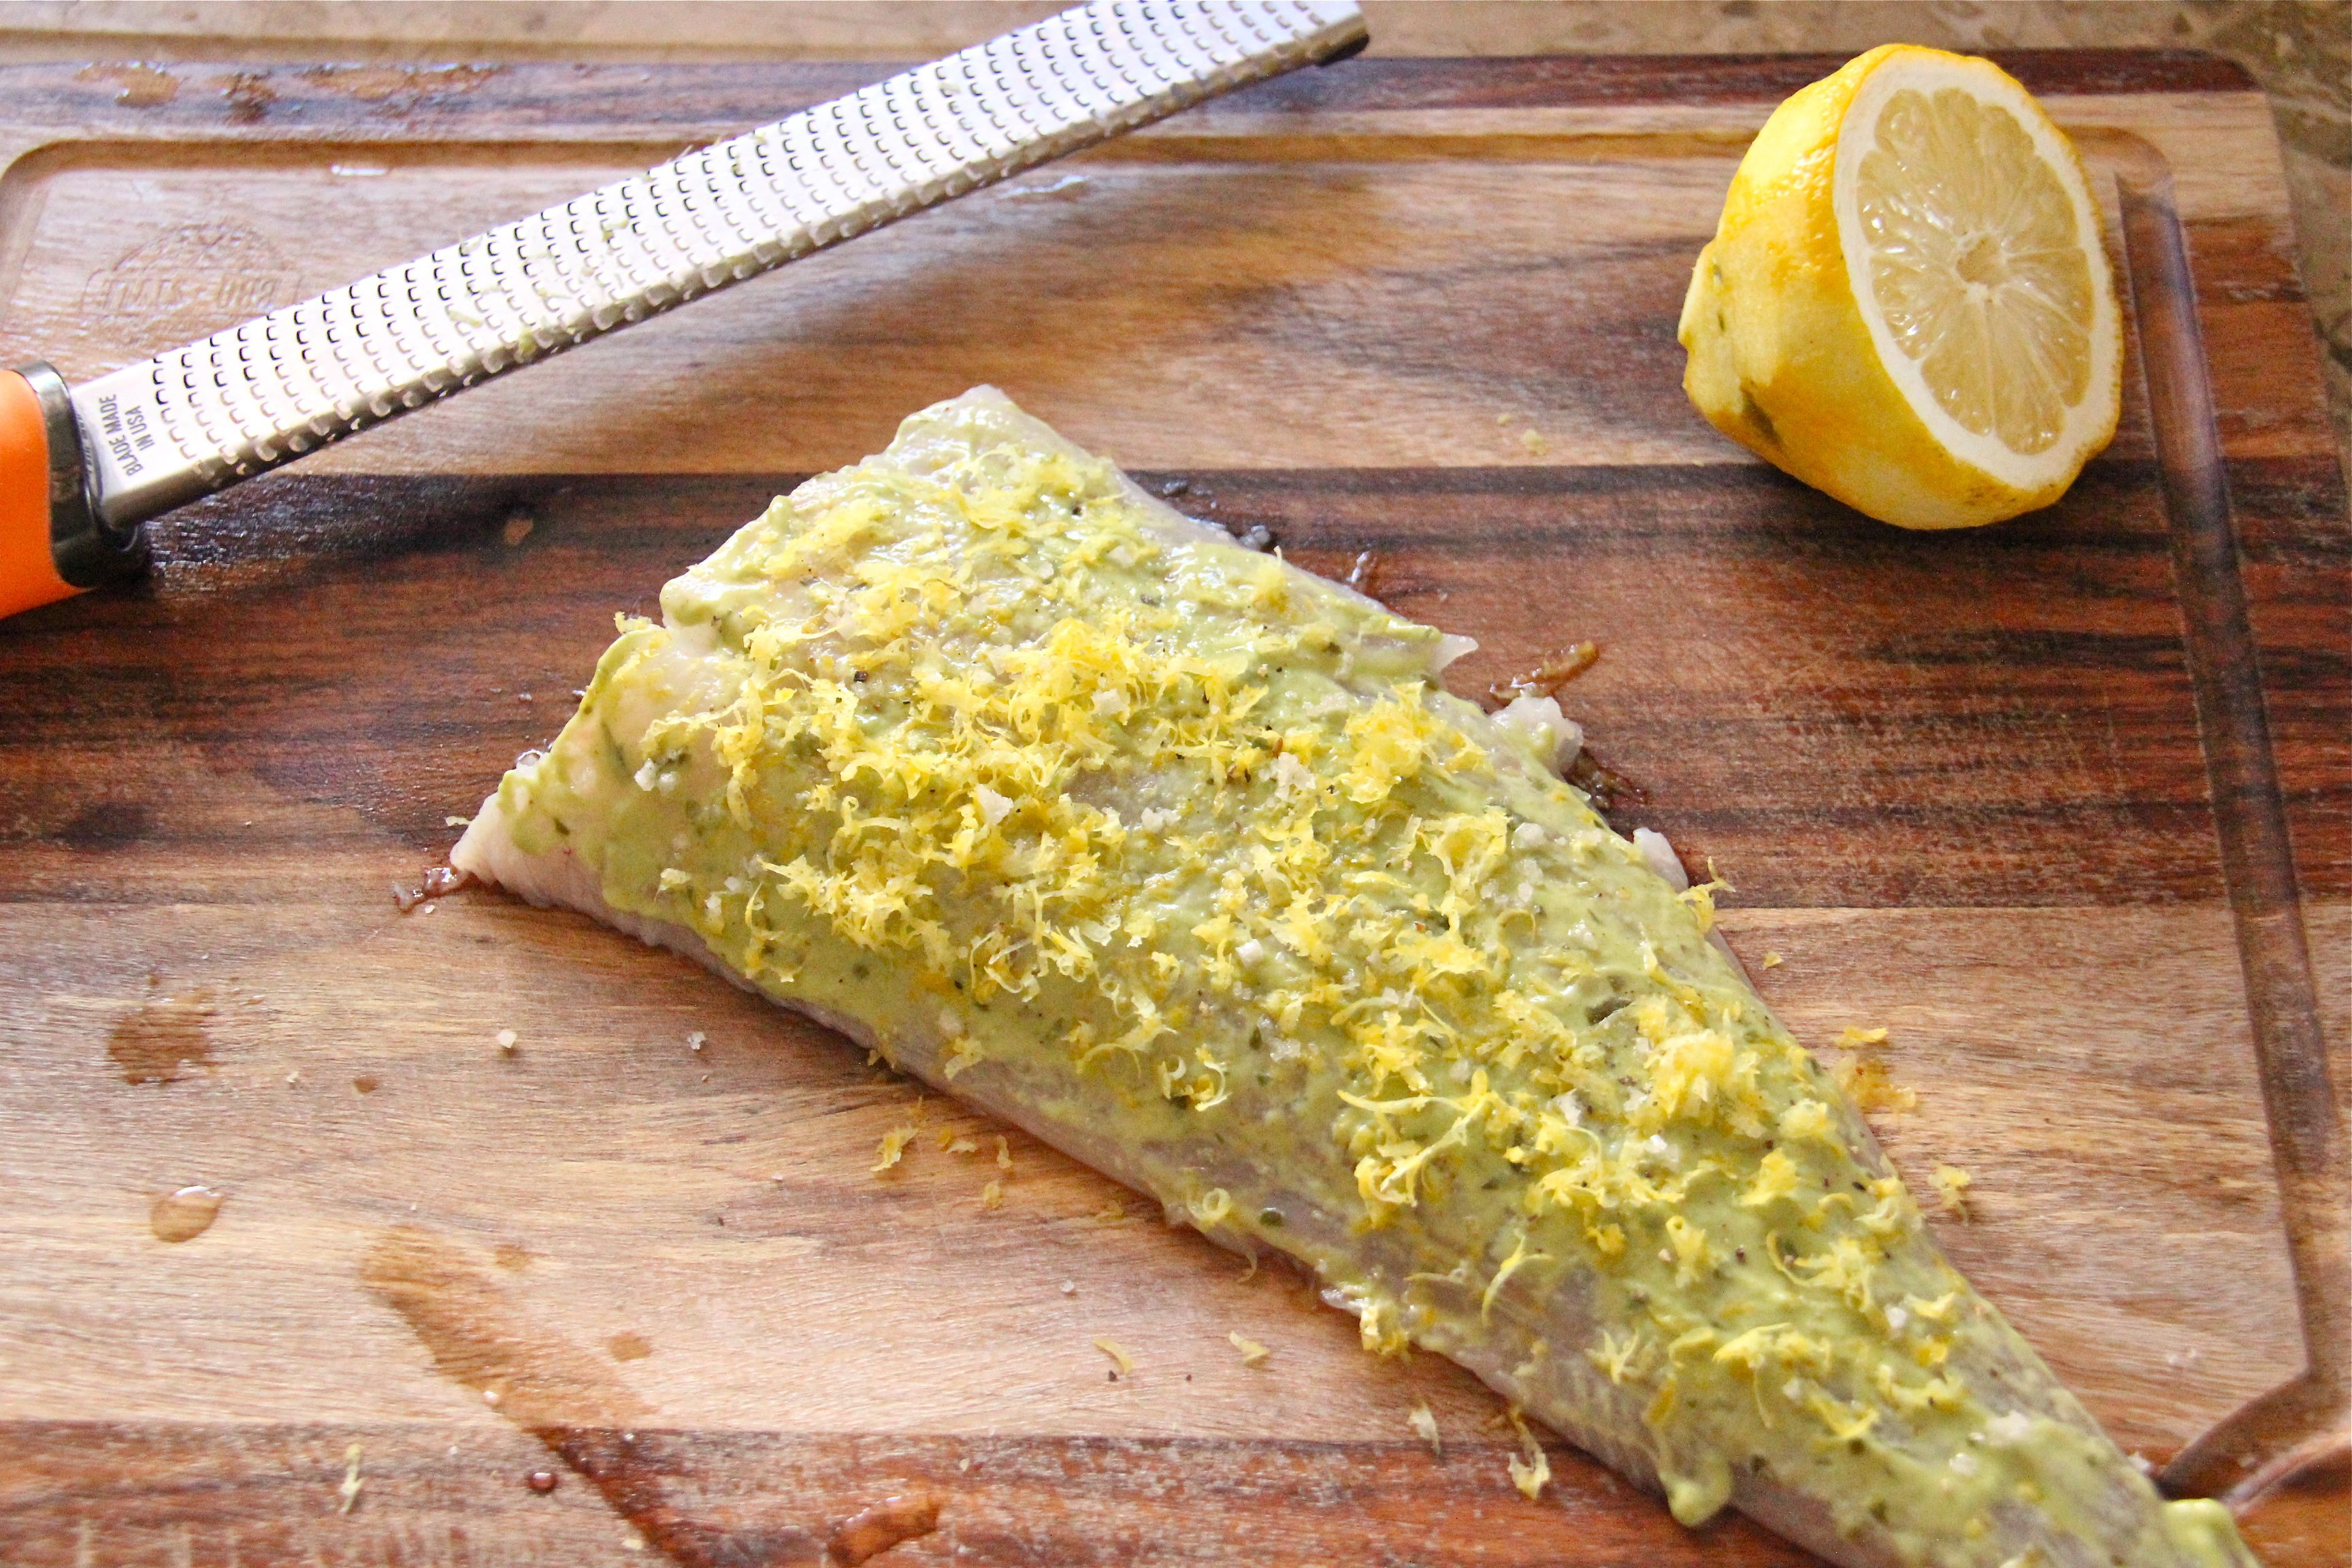 lemon and wholegrain mustard spread on a pollock fillet